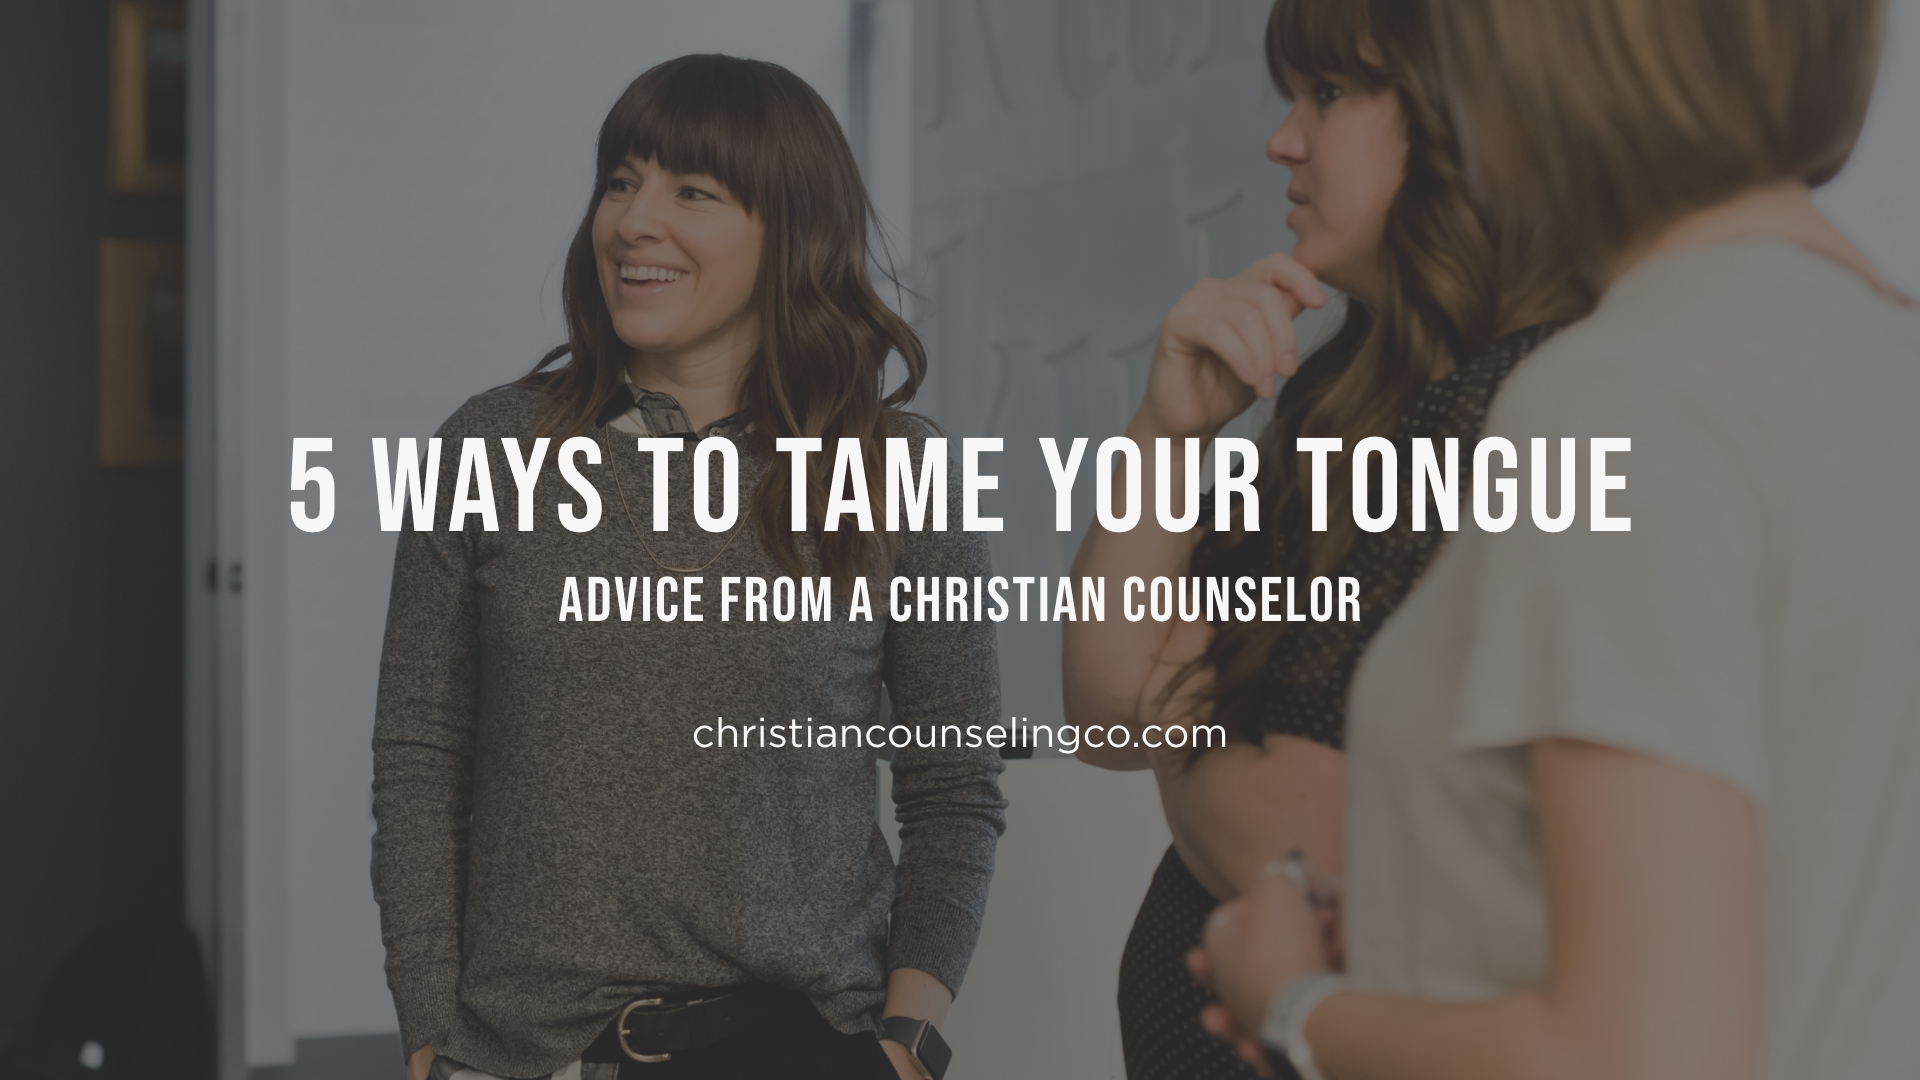 tame your tongue